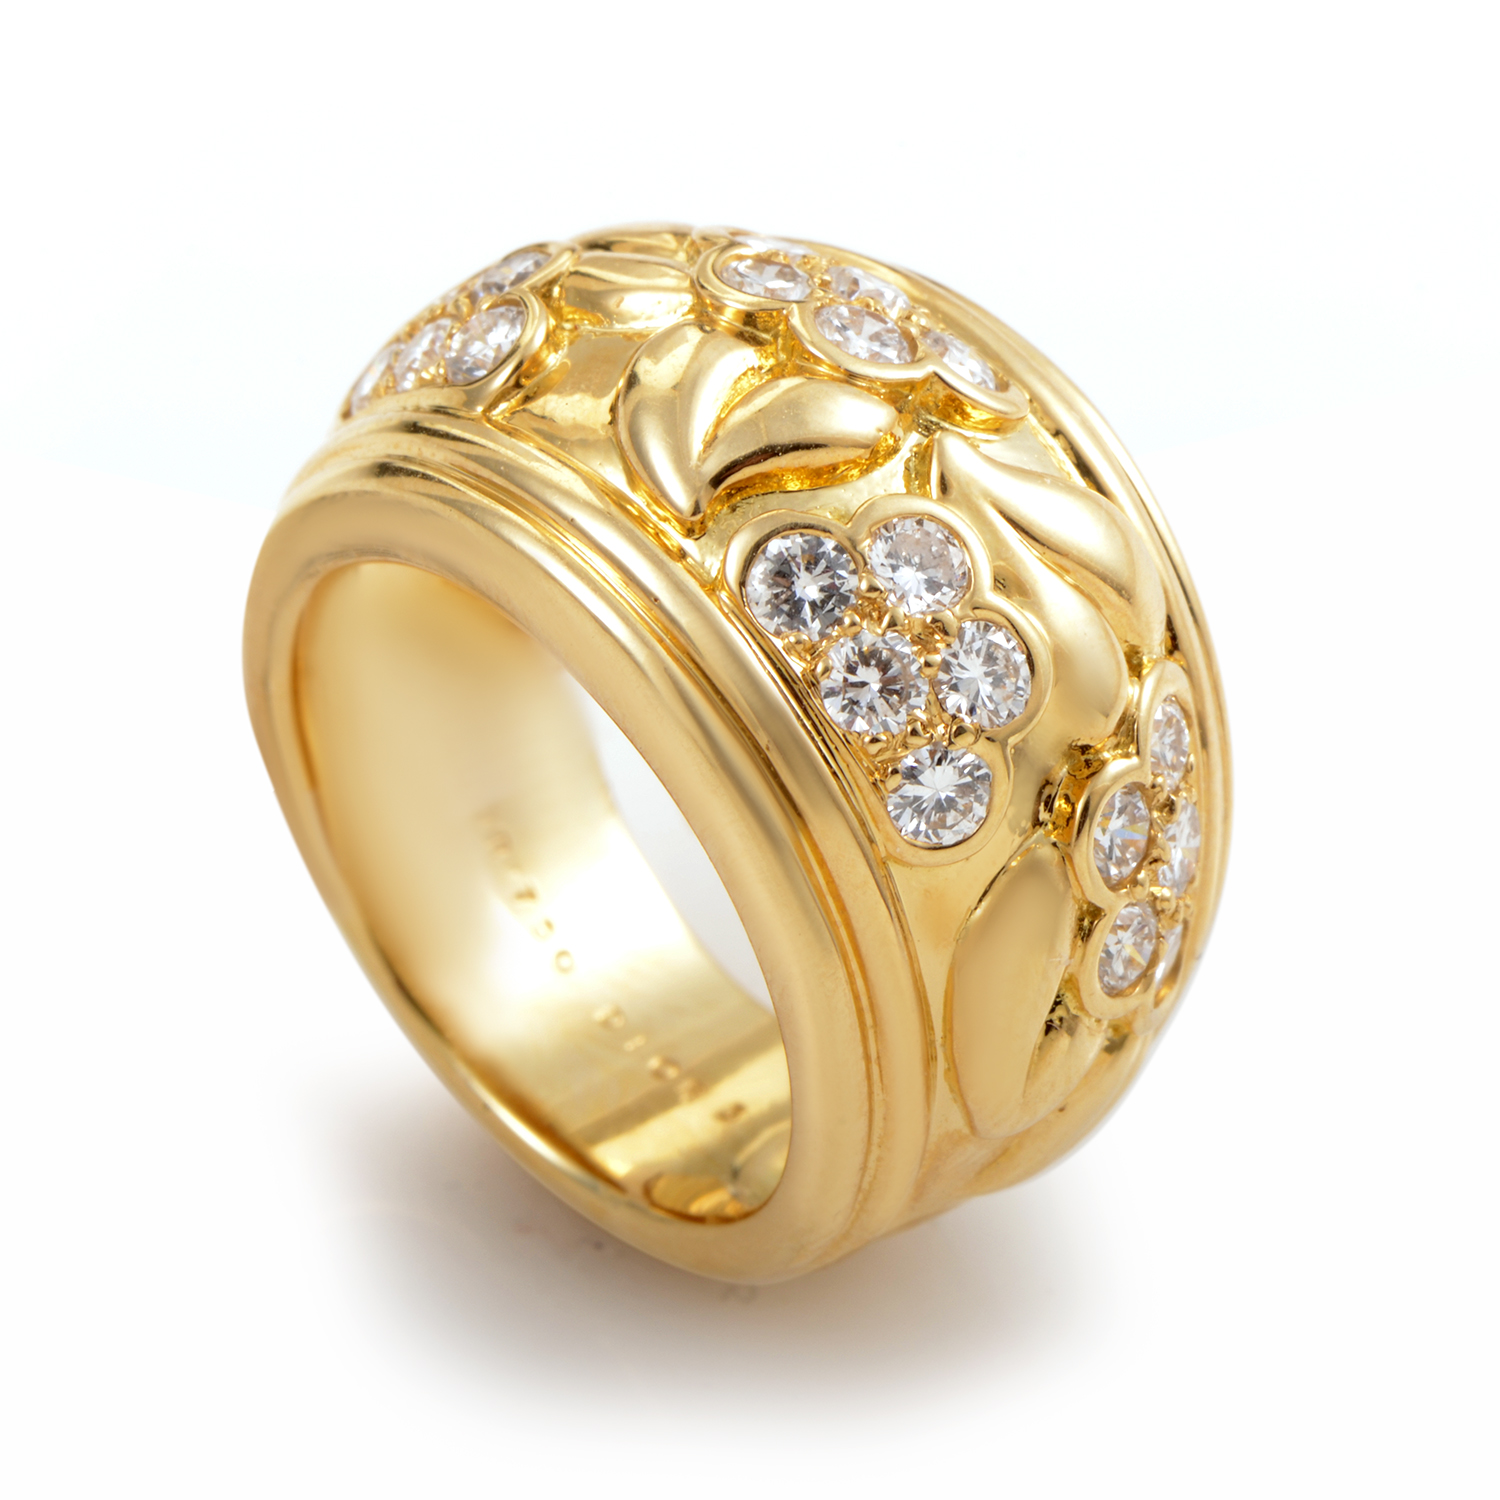 Dior 18K Yellow Gold Floral Diamond Band Ring